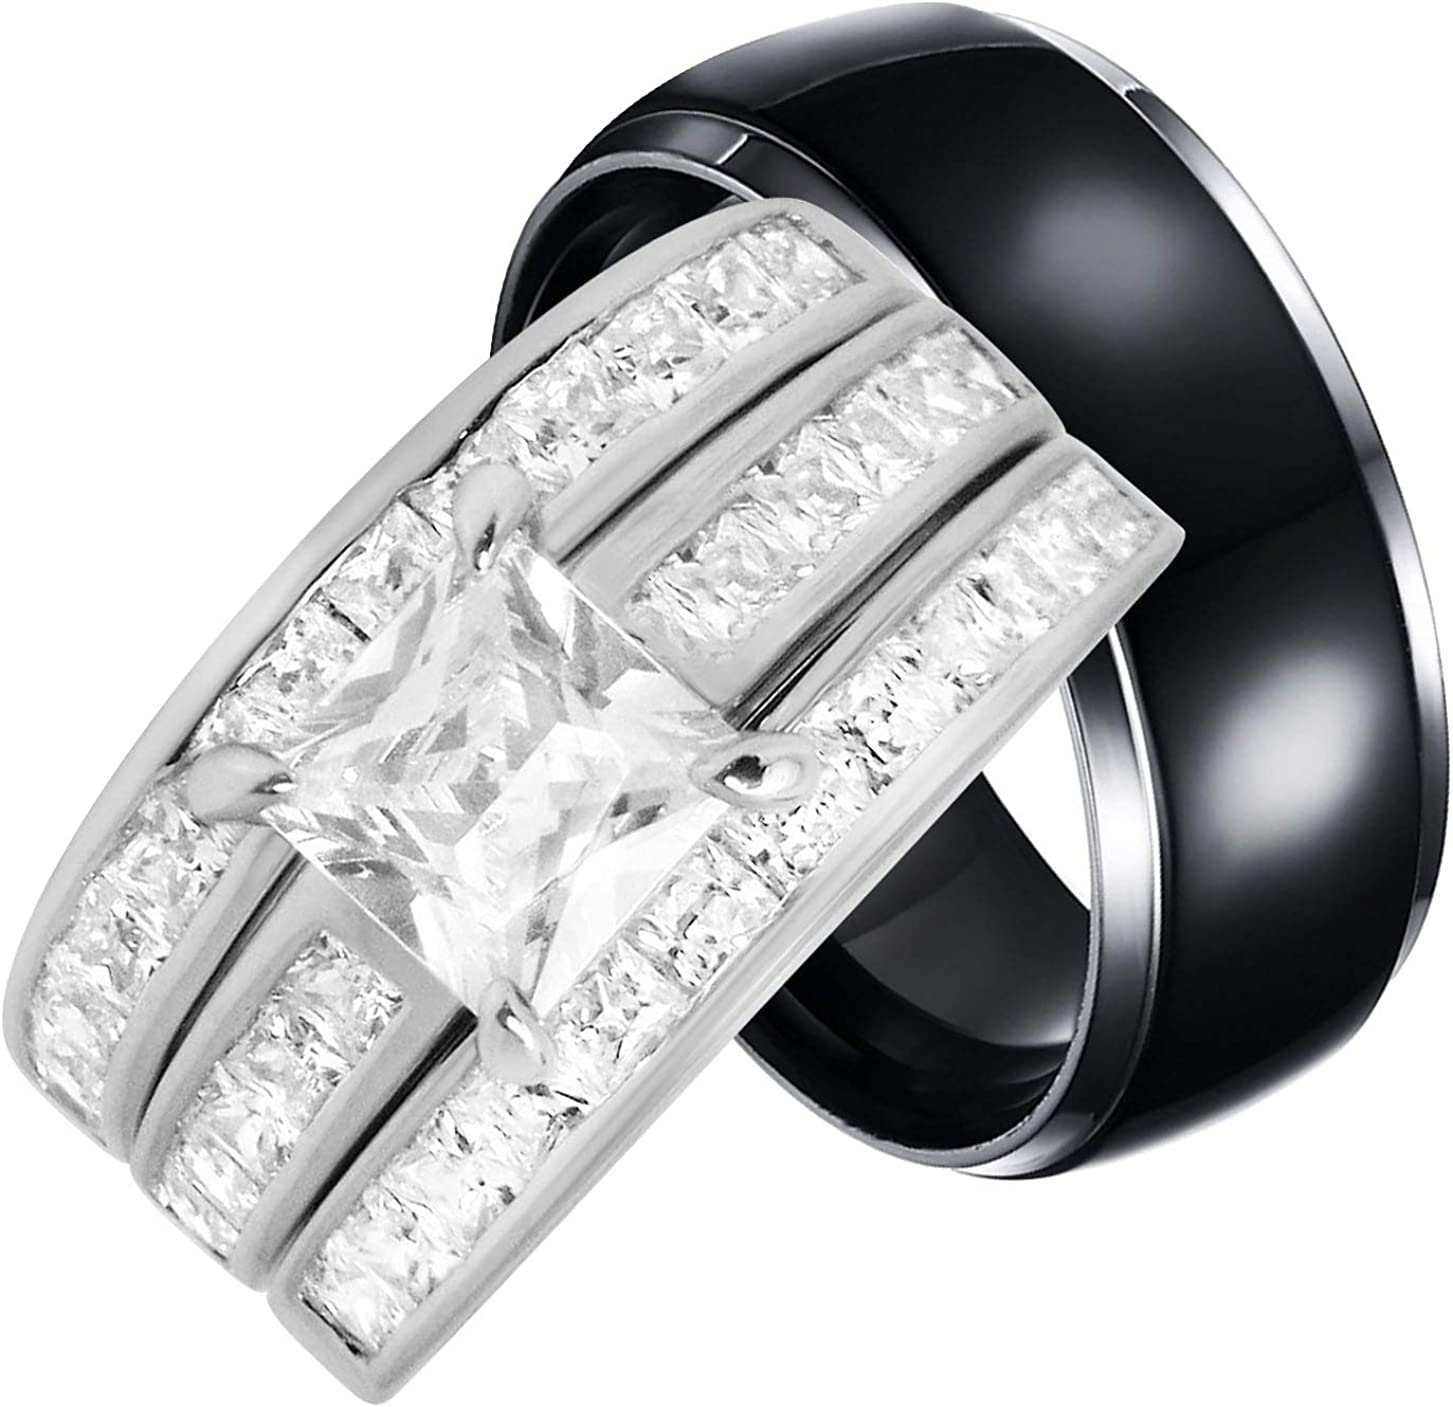 Amazon Com His And Hers Trio Wedding Rings Set Sterling Silver Titanium Matching Bands For Him And Her Jewelry